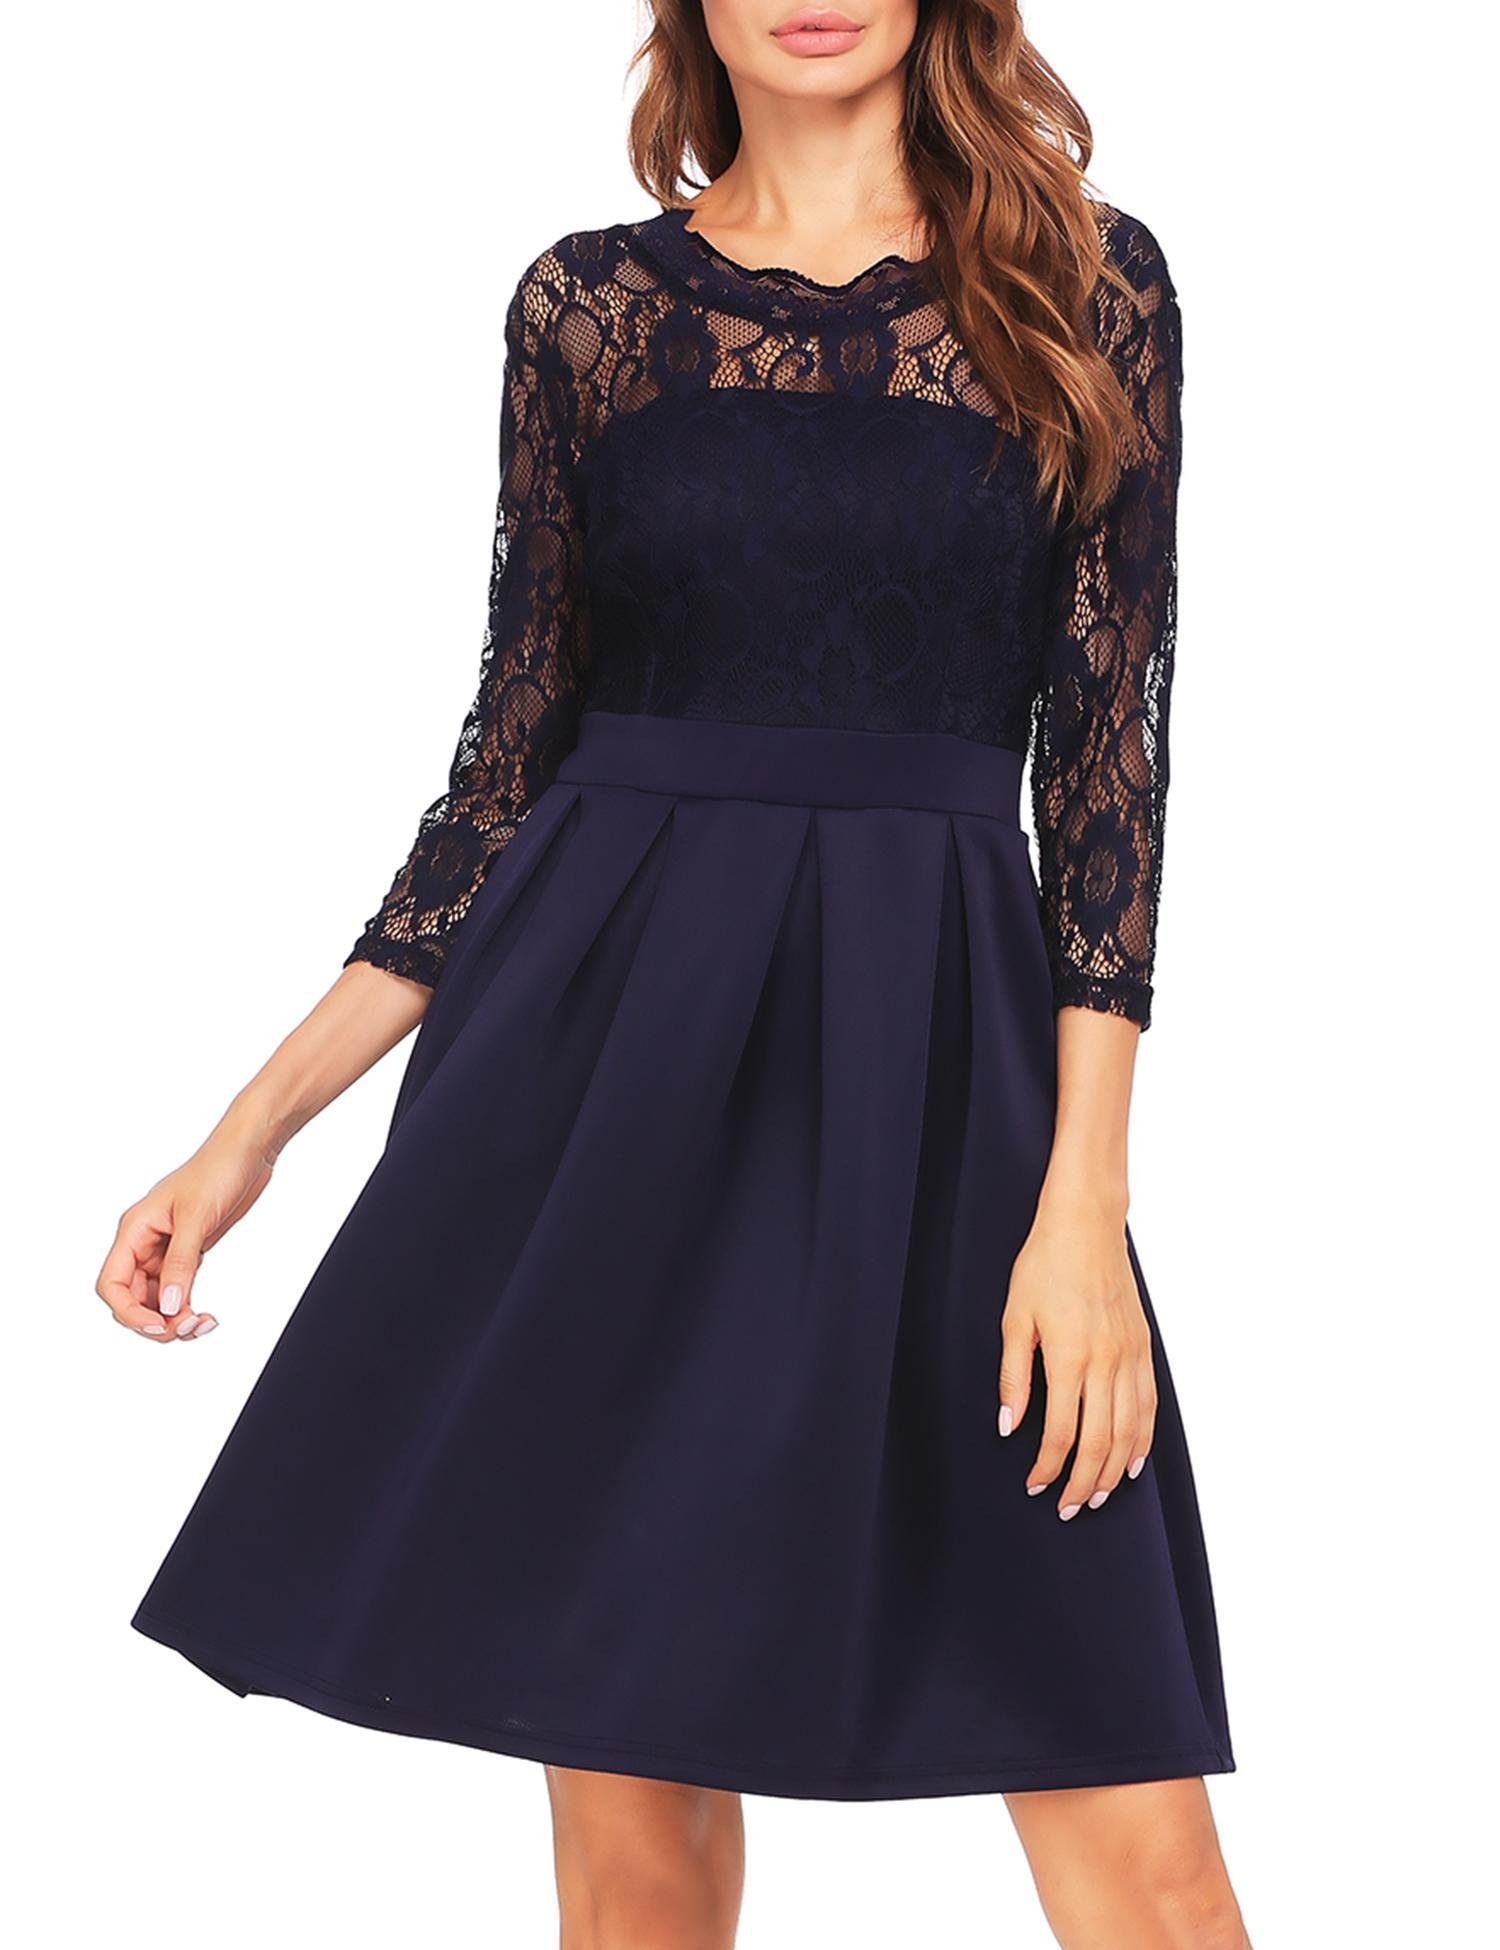 Zeagoo Women's Lace Vintage Hollow Out 3/4 Sleeve Pleated Cocktail Party Dress (Navy Blue XL)